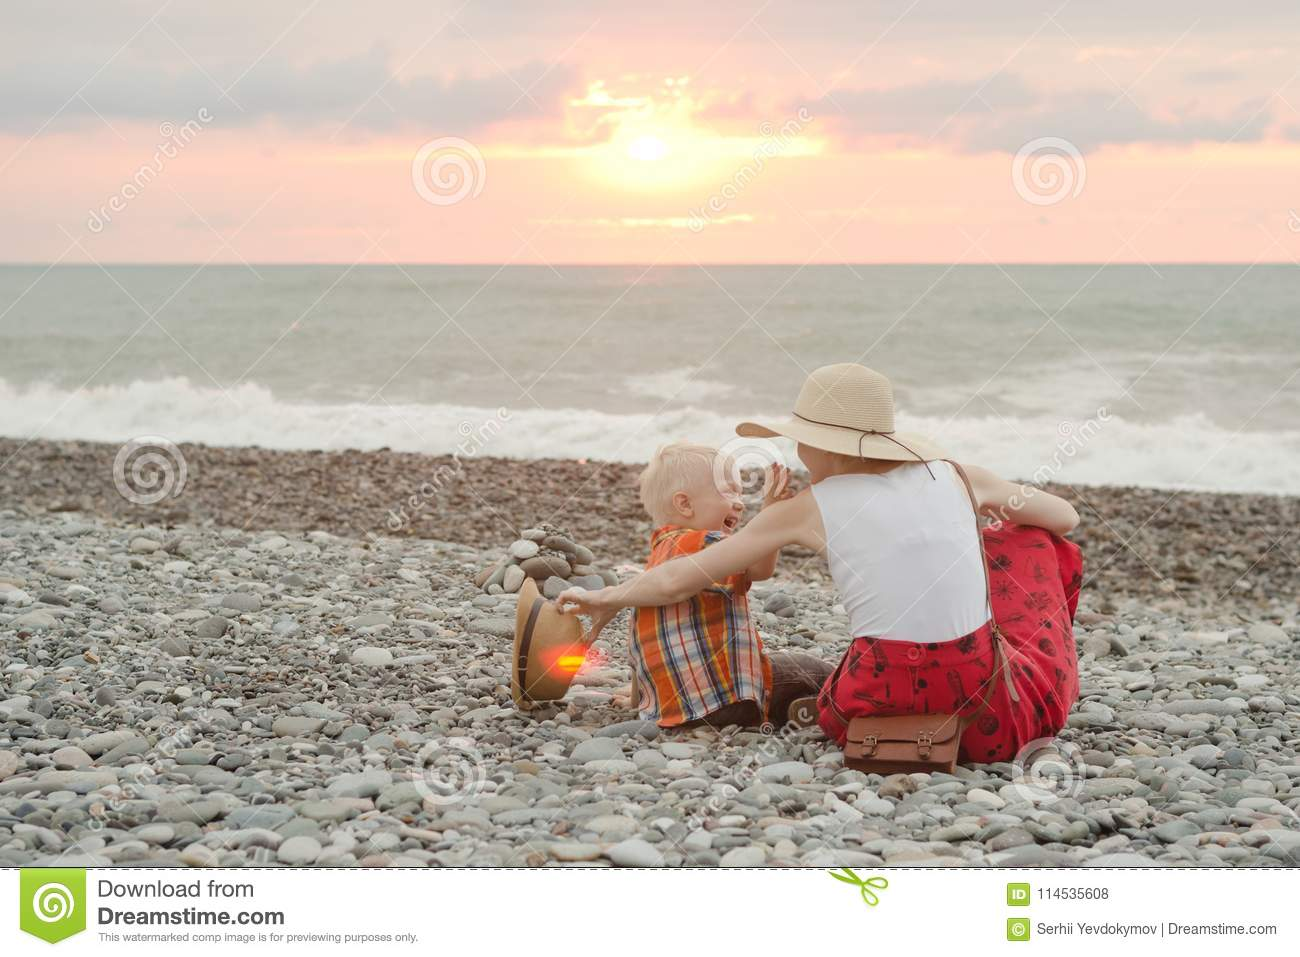 Mom and son play on the pebble beach. Sunset time. Back view